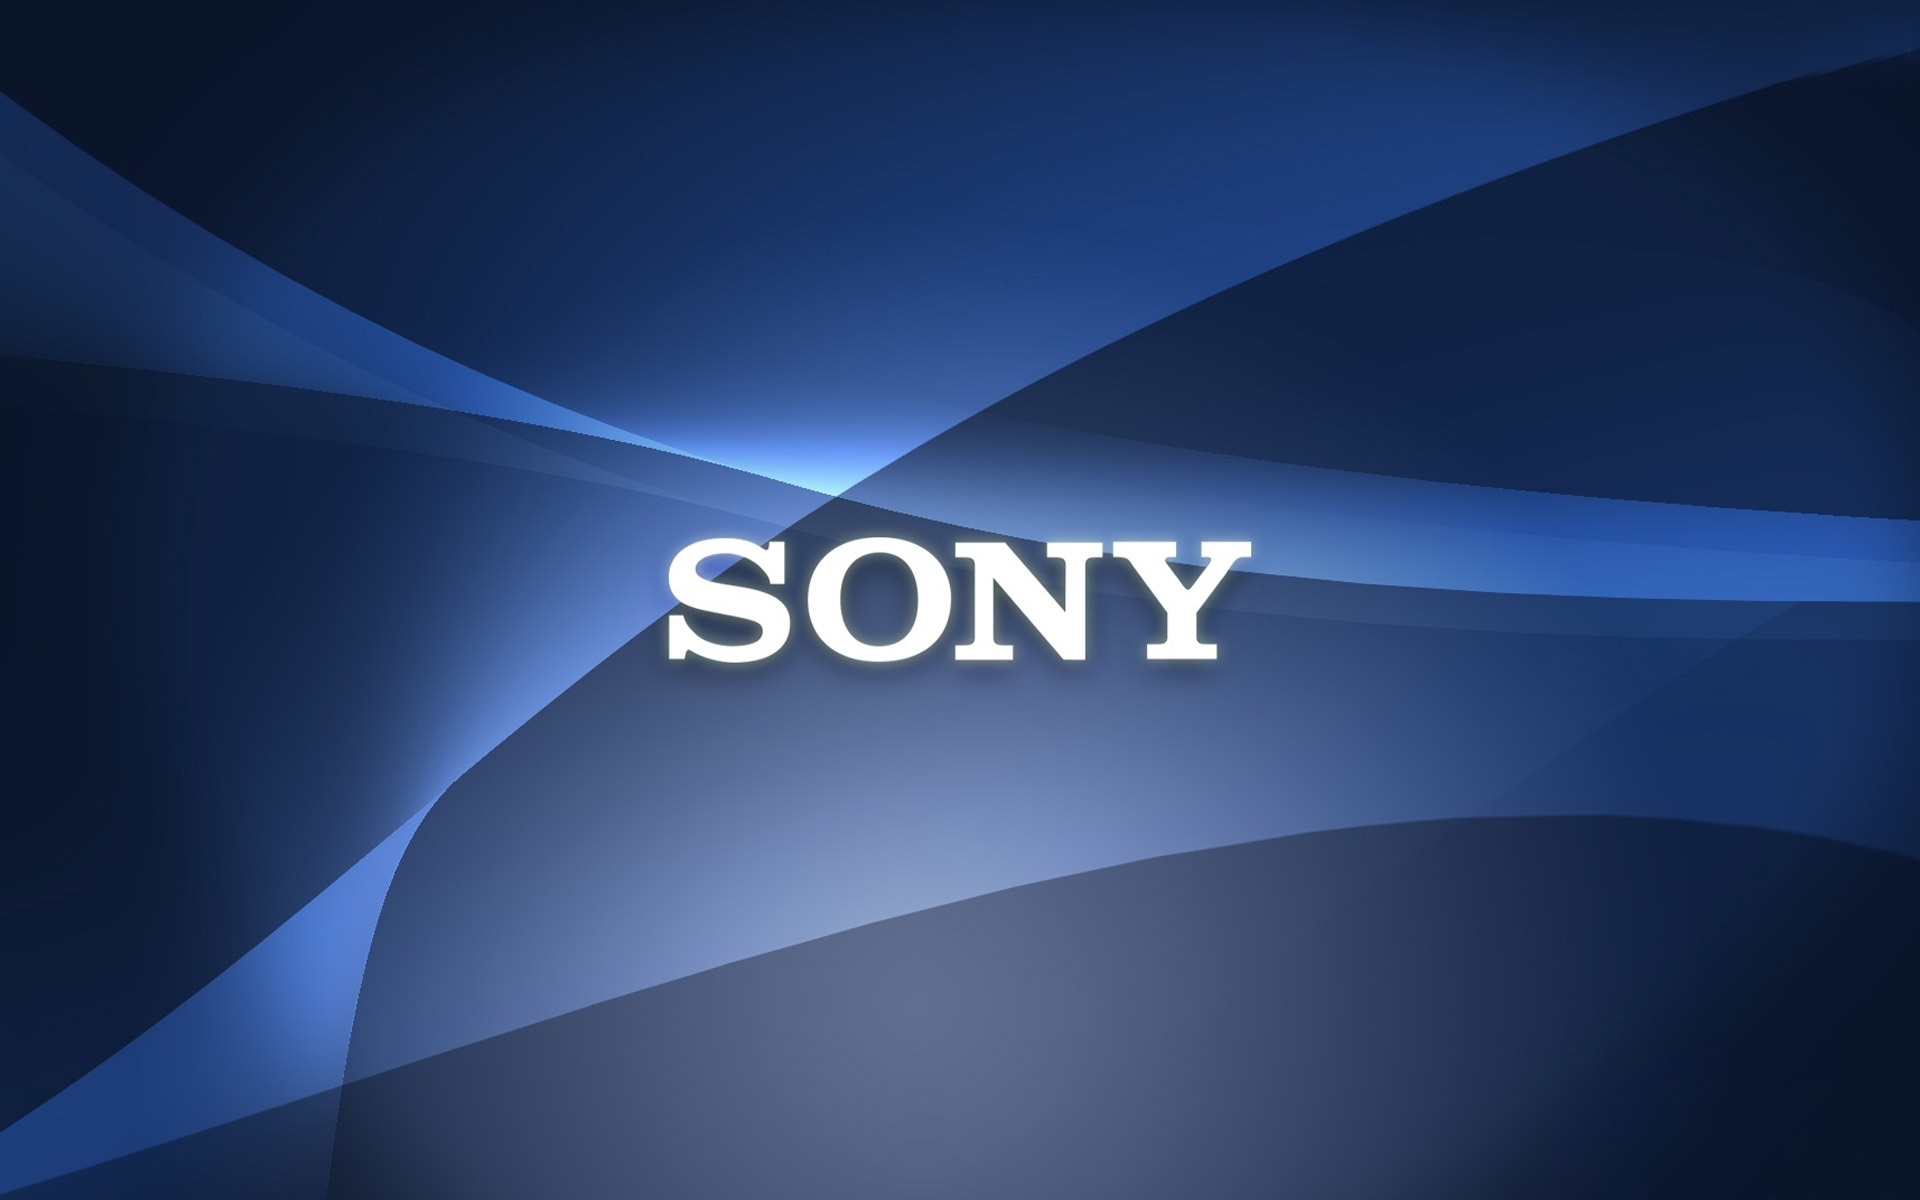 Wallpaper sony logo abstract background 1920x1200 hd picture image download this wallpaper voltagebd Gallery